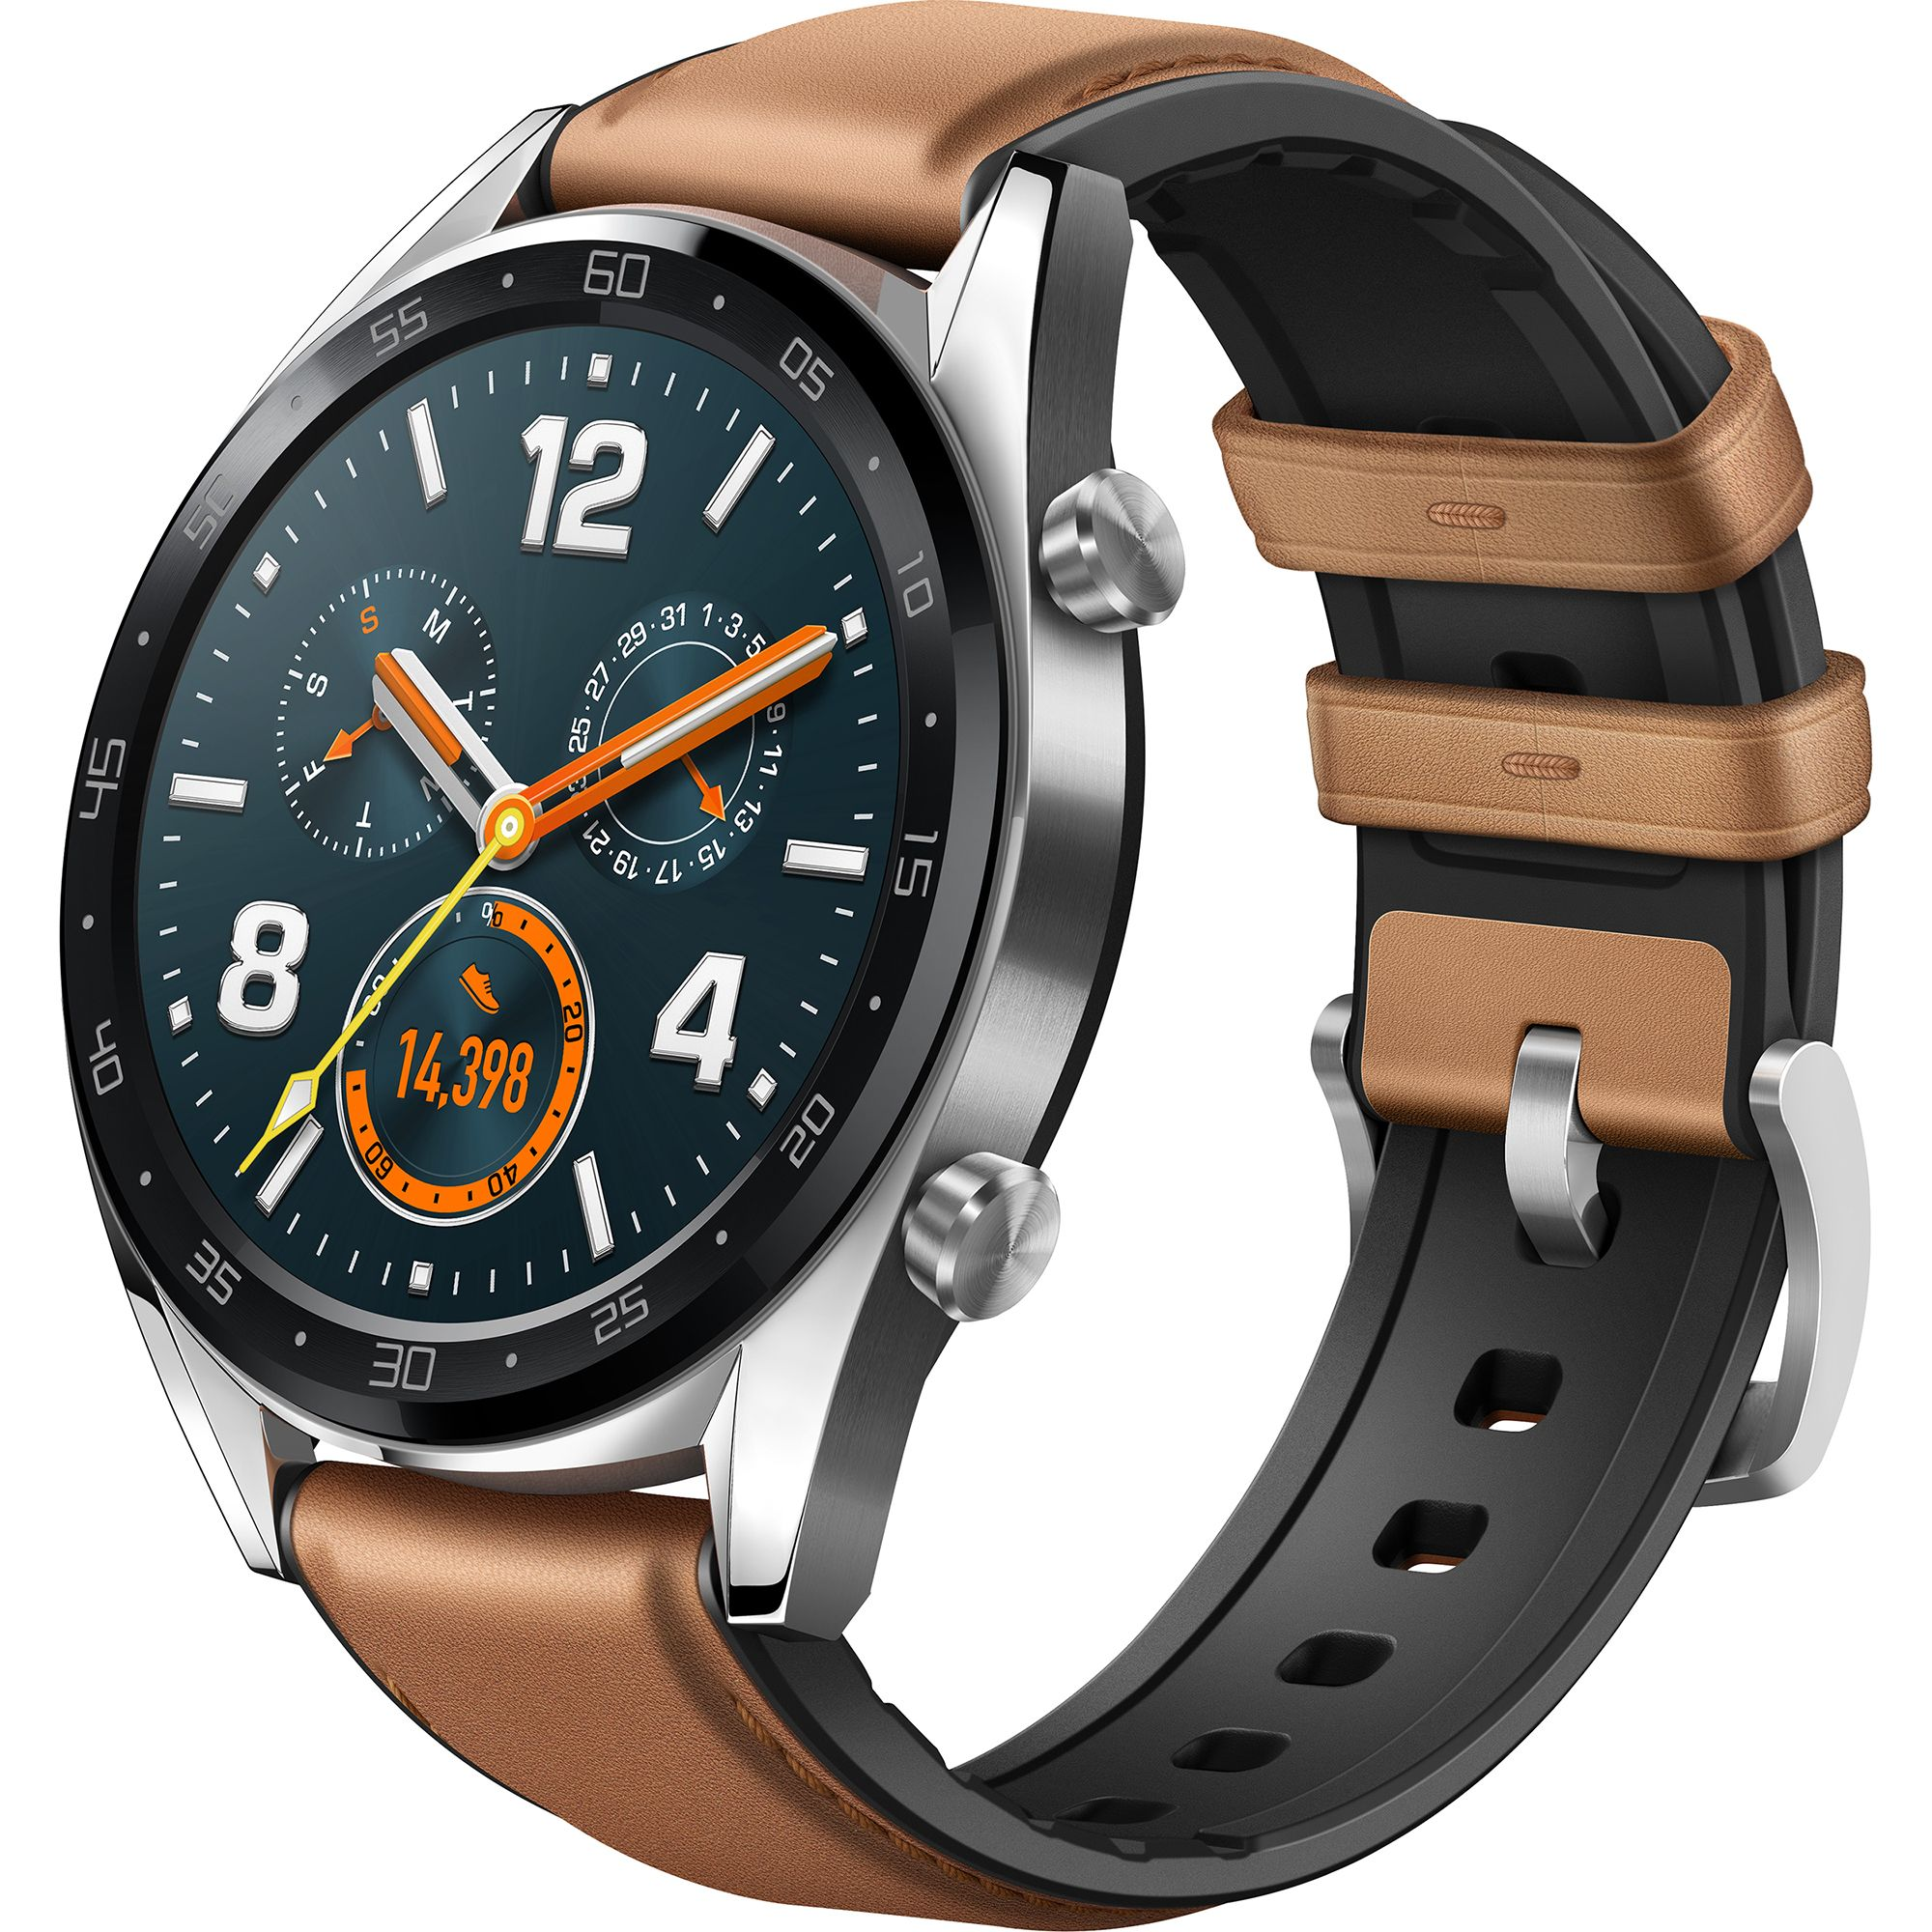 Ceas Smartwatch Huawei Watch GT, Classic, GPS, HR, 46mm, Silver Stainless Steel, Curea Saddle Brown